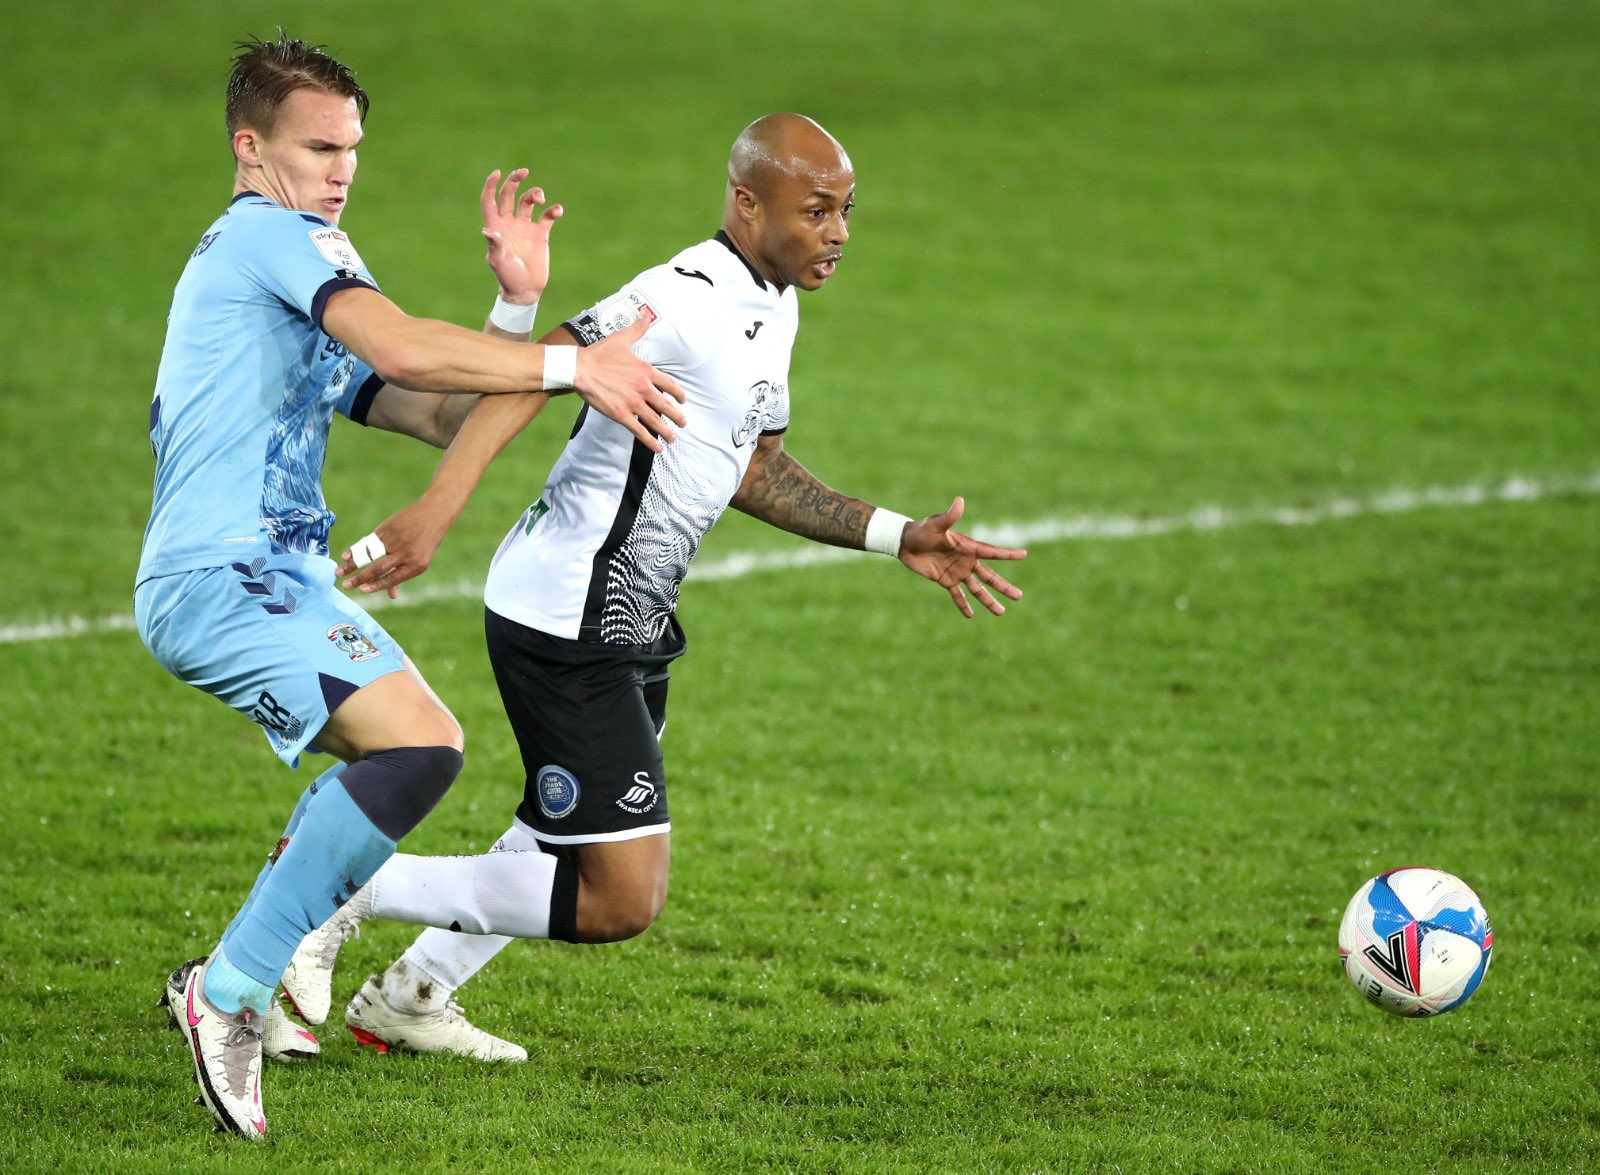 Andre Ayew impress for Swansea City in 1-0 win against Coventry